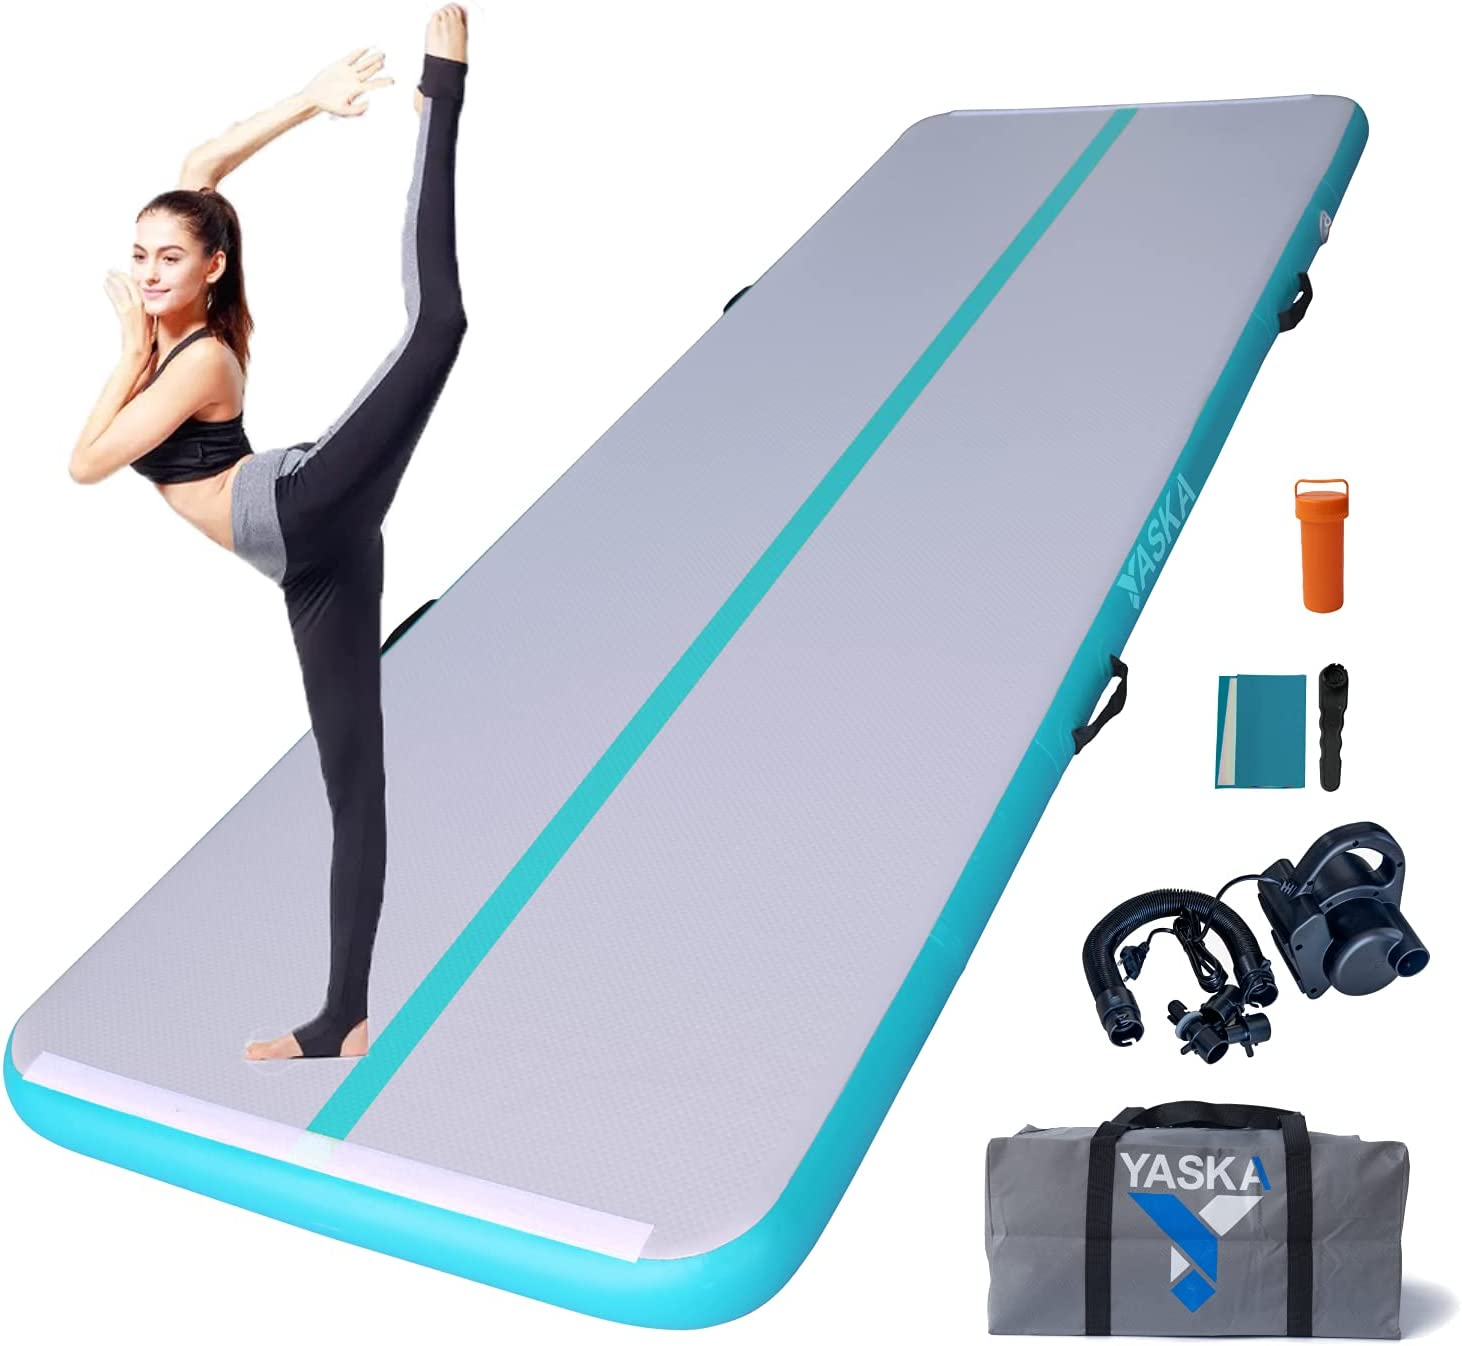 10 13ft low-pricing Air Tumbling Mat 4 inches Electric With Pump Thickness f High quality new